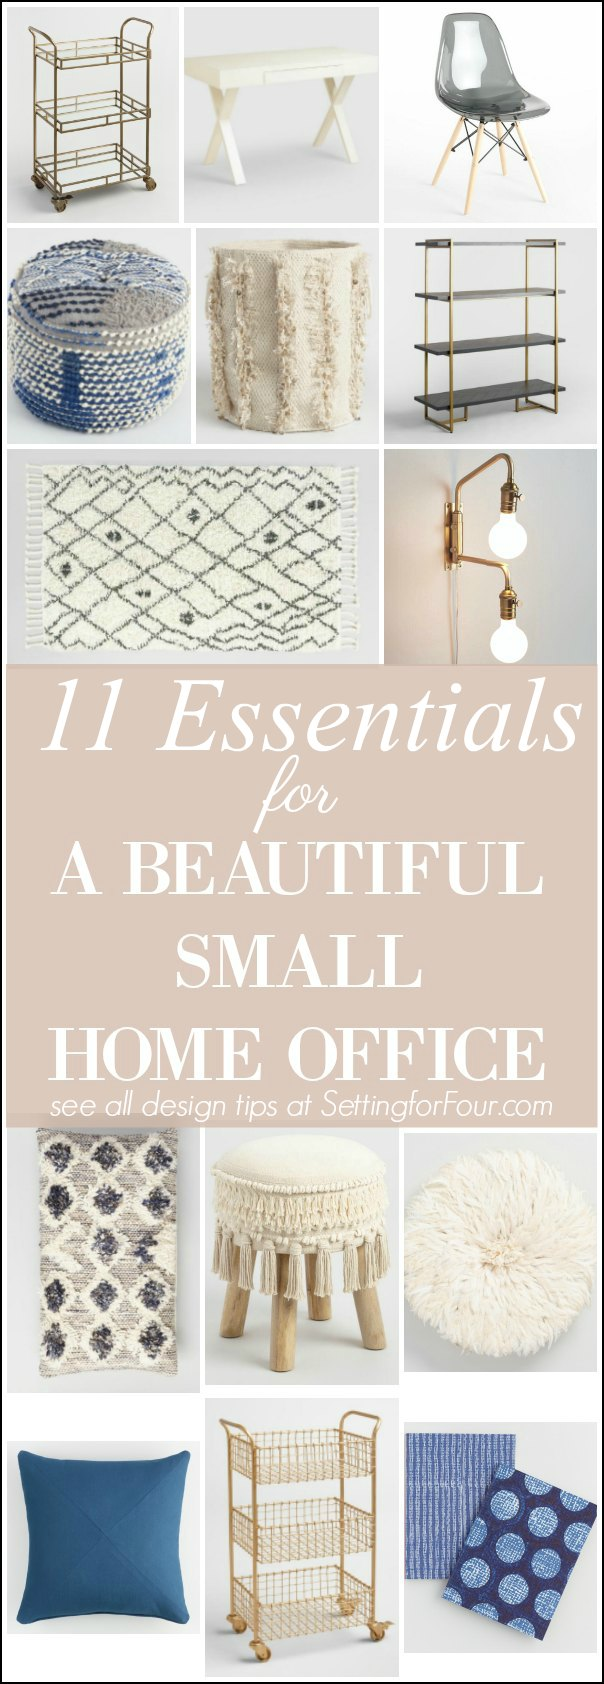 Don't think you have room for a home office? YES YOU DO! Here are 11 ESSENTIALS TO CREATE A BEAUTIFUL SMALL HOME OFFICE! Using small space furniture that's big on style and function you can make every inch count and create a beautiful home office zone in a weekend! Layer in my accent decor ideas loaded with personality, texture and color to motivate you as you keep your home and family organized! #ad